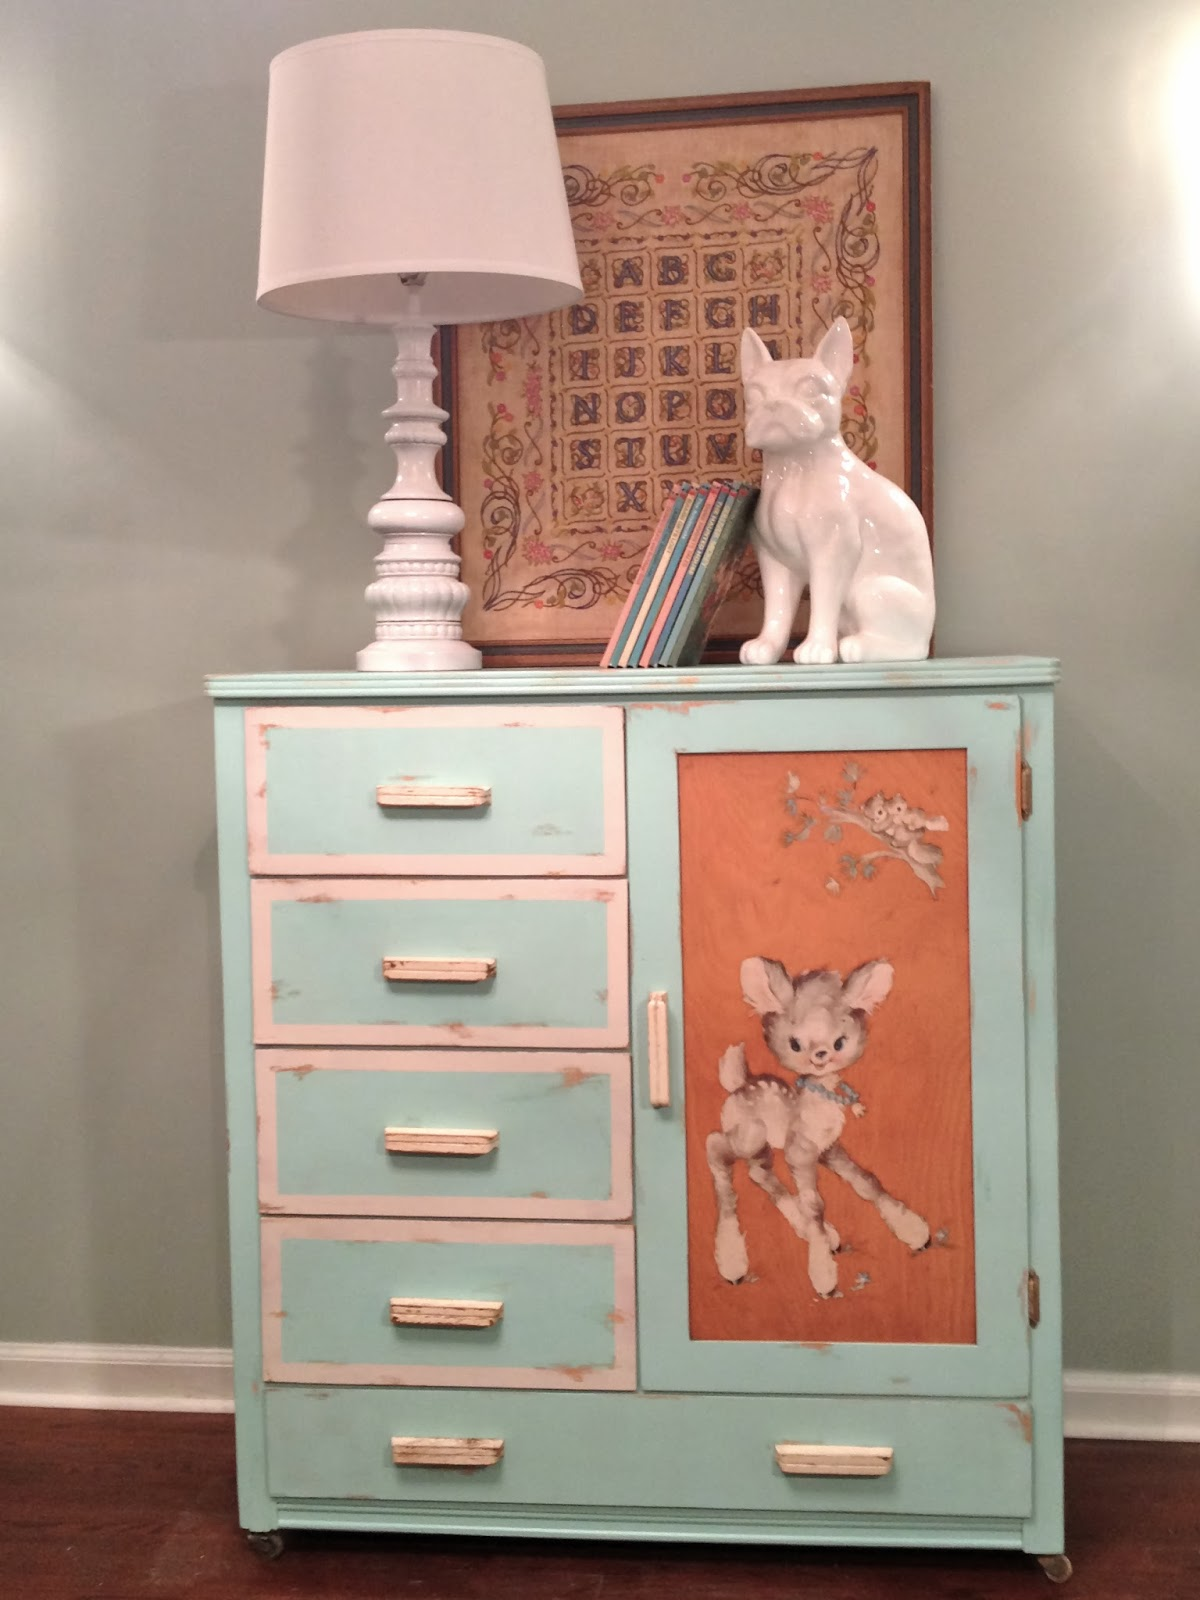 My First Etsy Listing Vintage Teal Dresser with